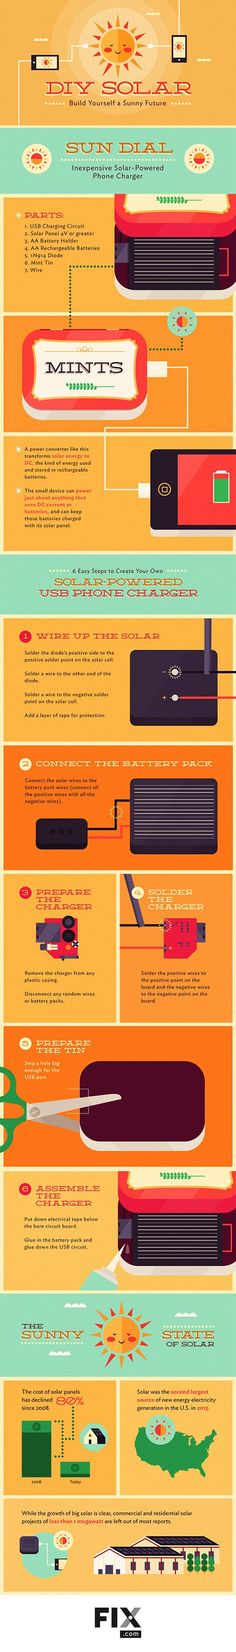 INFOGRAPHIC: Make your own solar phone charger | Inhabitat - Sustainable Design Innovation, Eco Architecture, Green Building